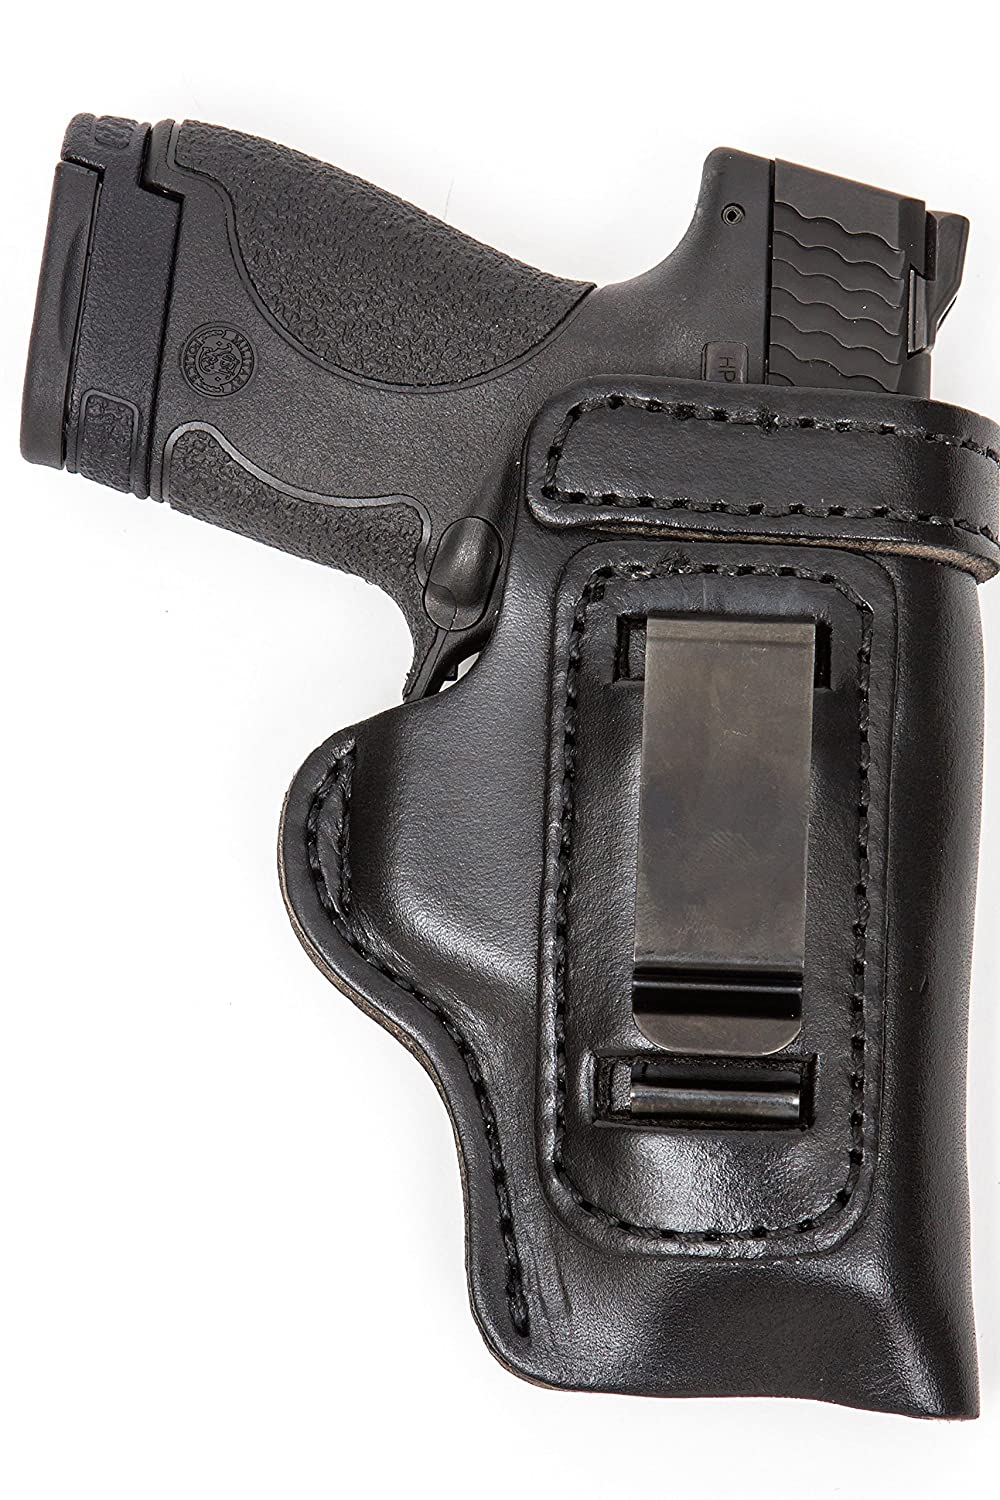 Amazon com : The Holster Store: Leather Gun Holster For Kimber Micro